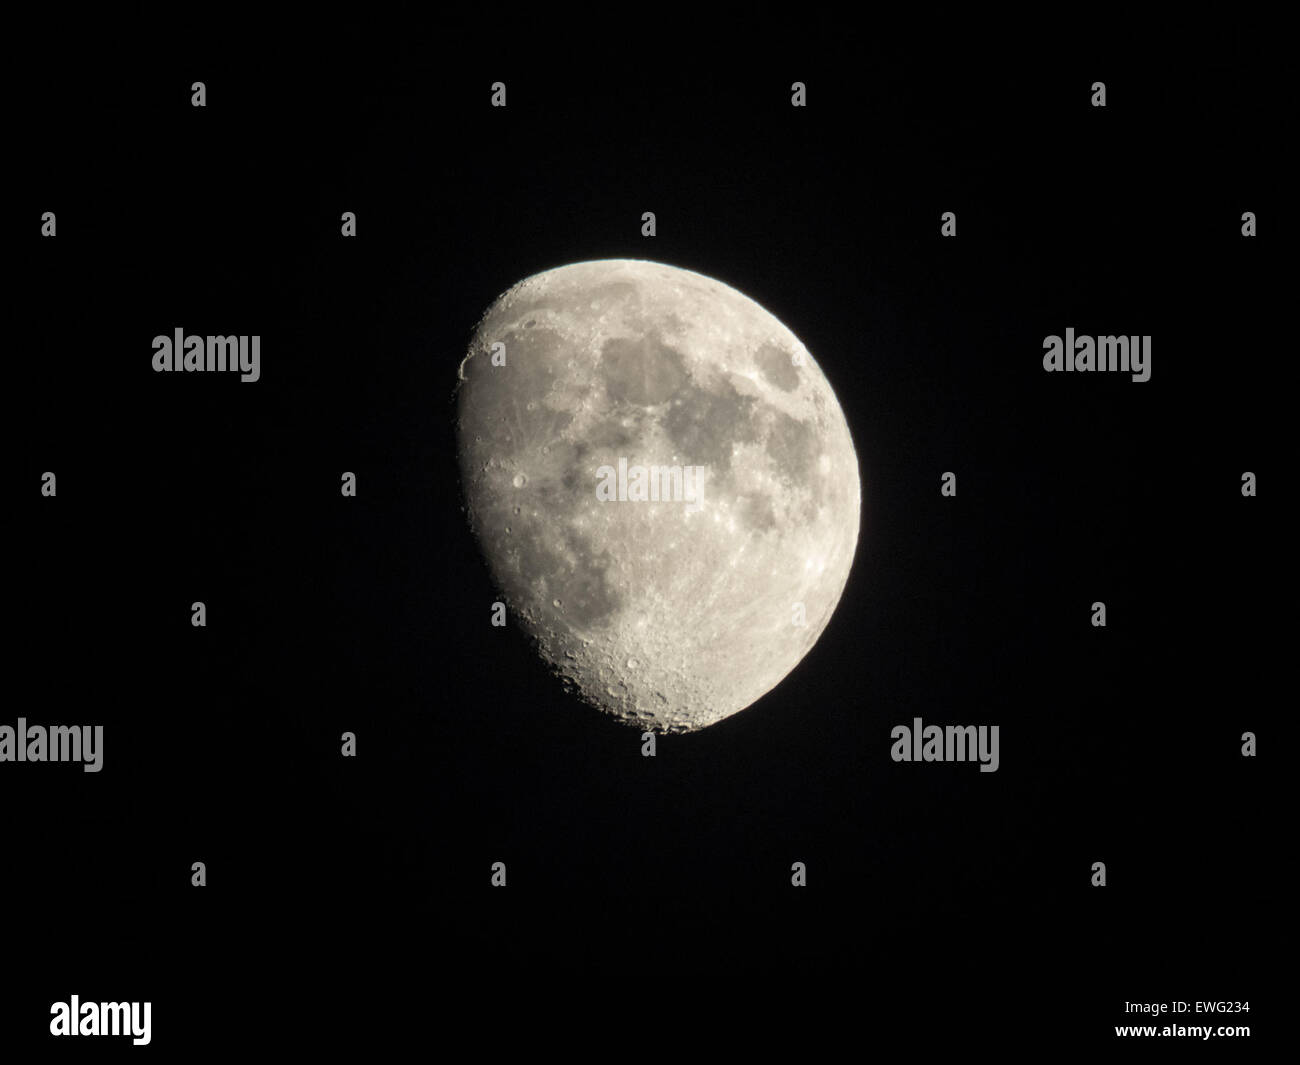 Waxing Gibbous Moon with Black Background Craters Luna Waxing Gibbous astronomy black background lunar moon night - Stock Image